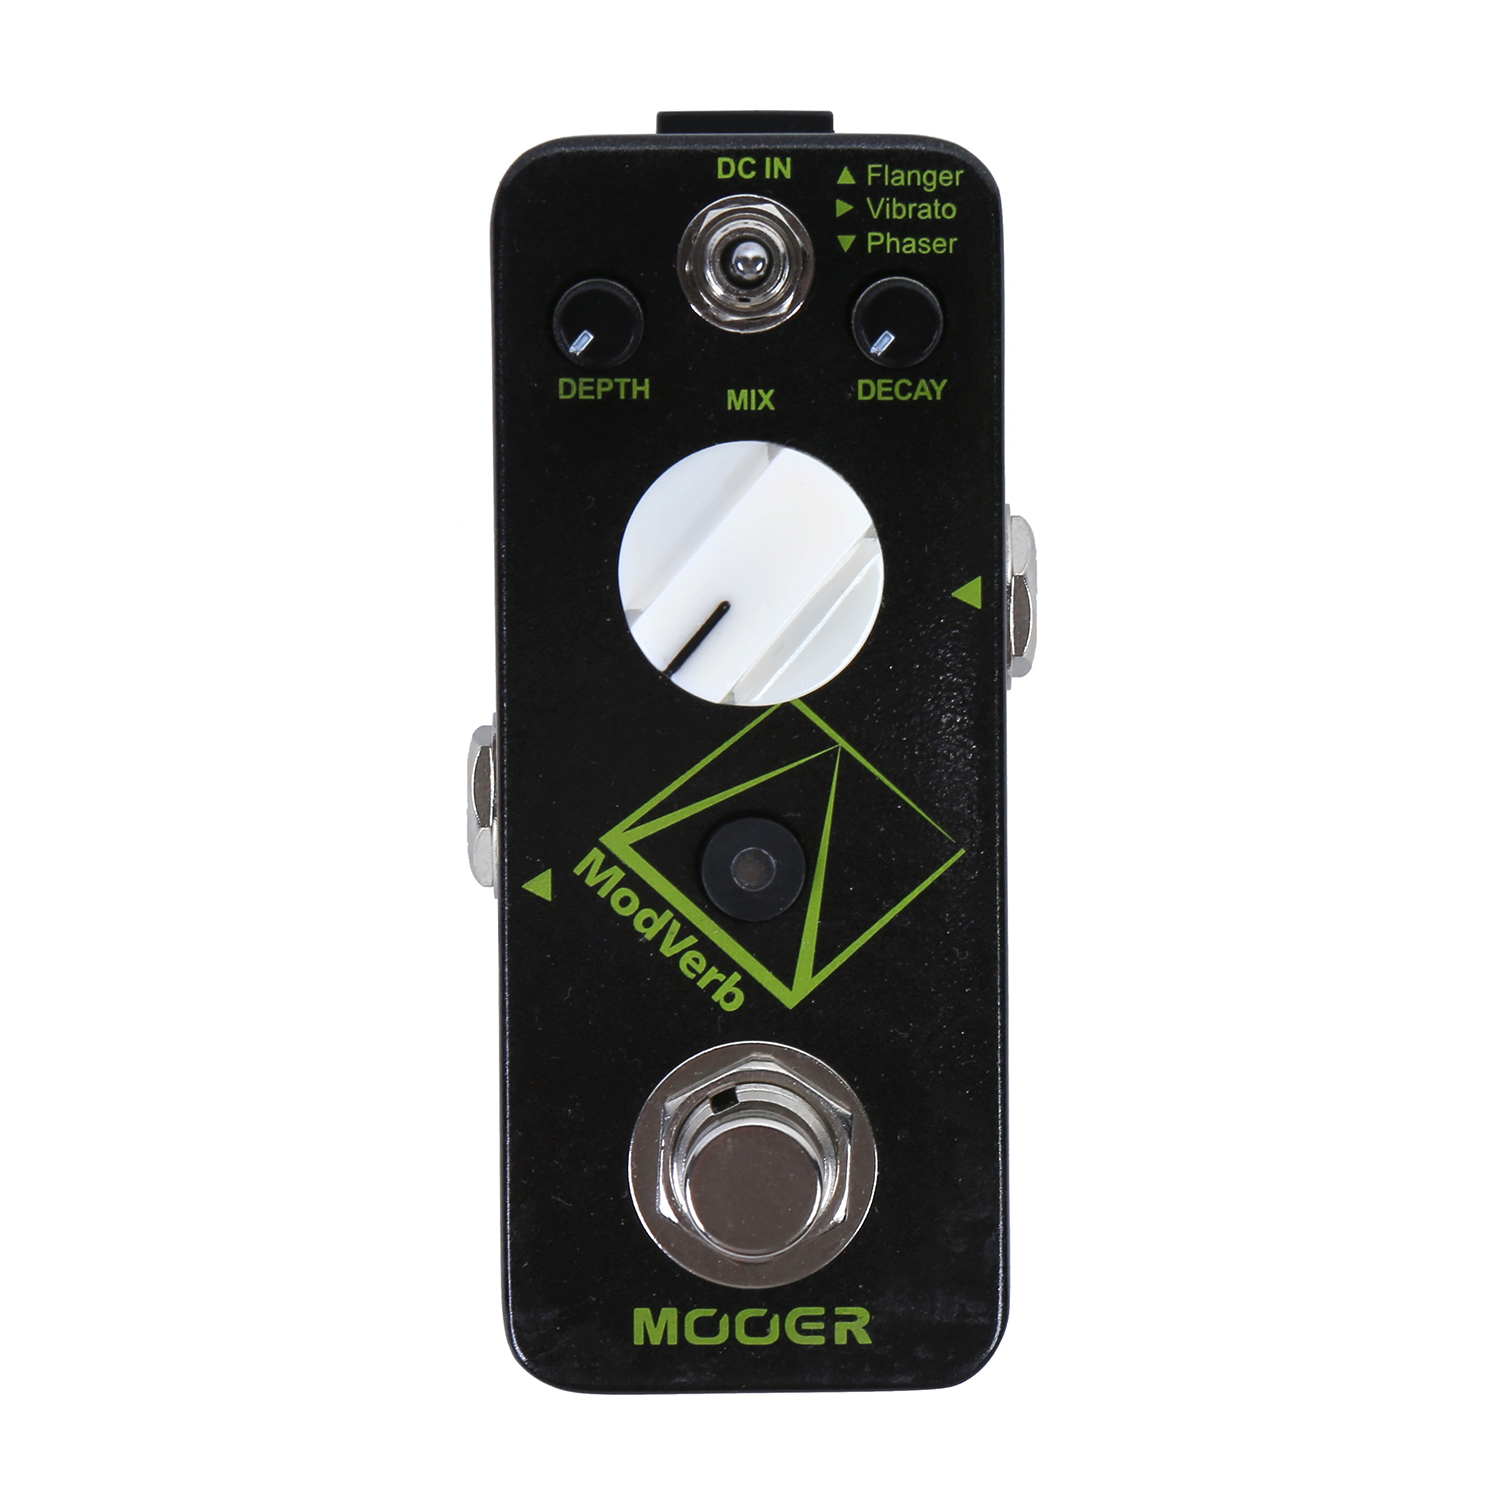 Mooer Modverb Modulation Reverb Pedal Guitar Effect Depth Decay Control Flanger Vibrato Phaser Switch MDV1 ботинки дерби с пайетками 26 39